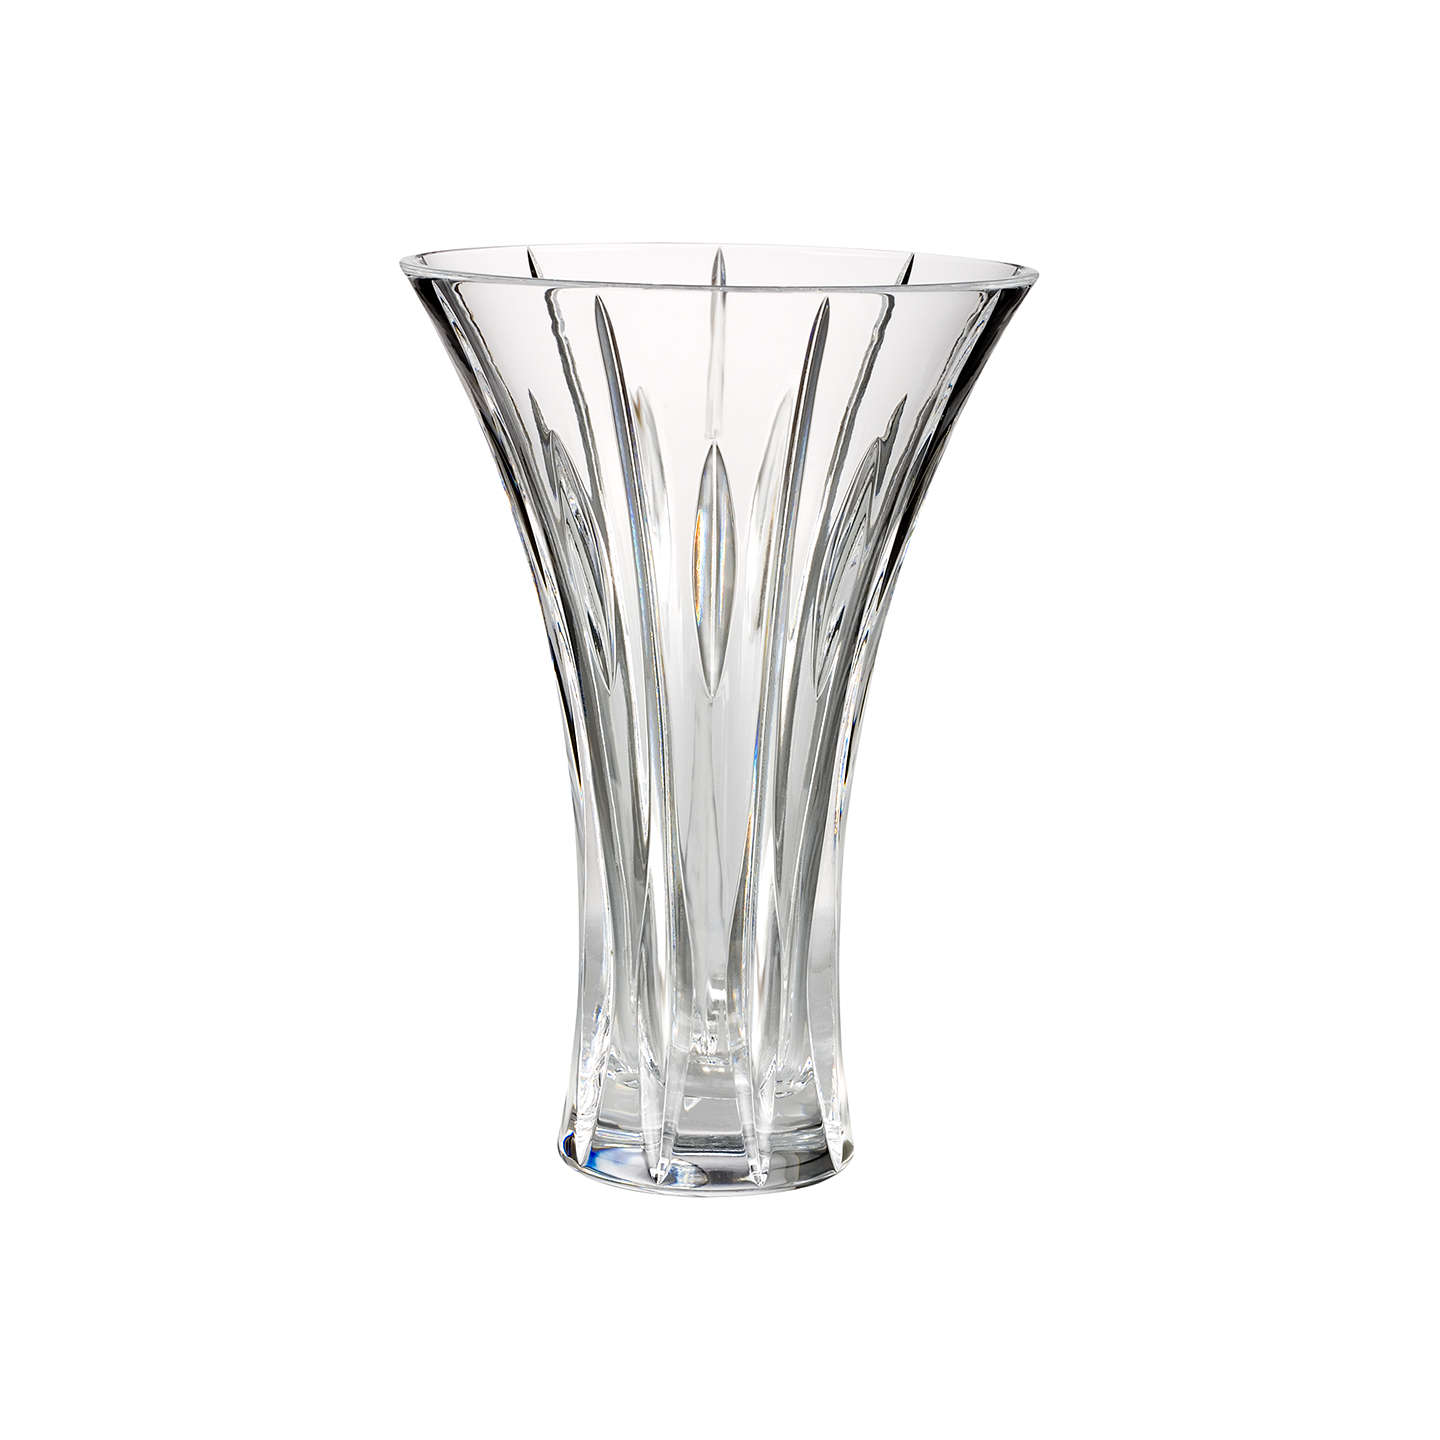 BuyMarquis by Waterford Crystal Sheridan Flared Vase, H23cm Online at johnlewis.com